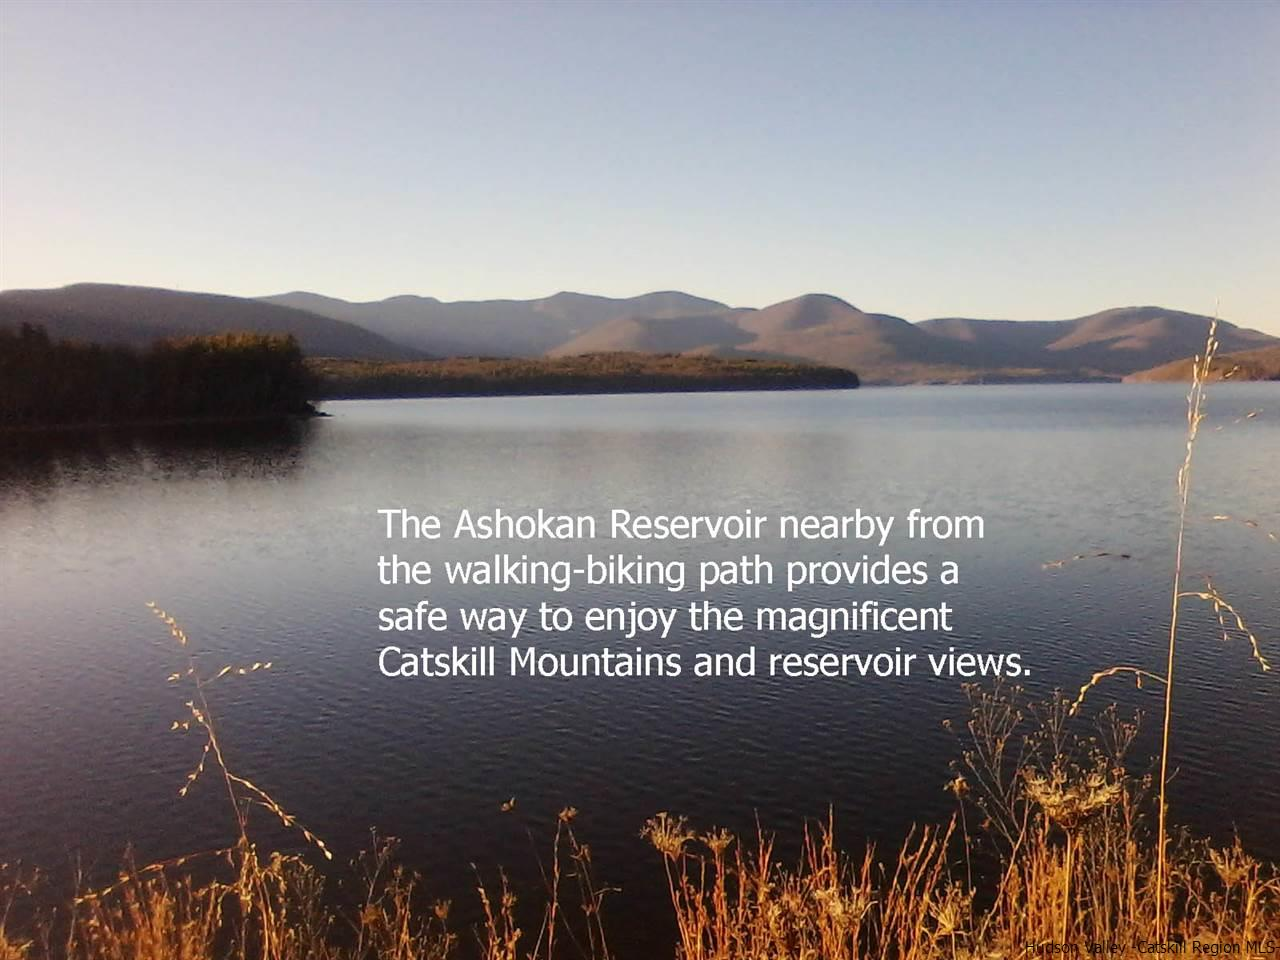 Enjoy the miles of pathway for walking and biking only along the Ashokan Reservoir dike nearby.